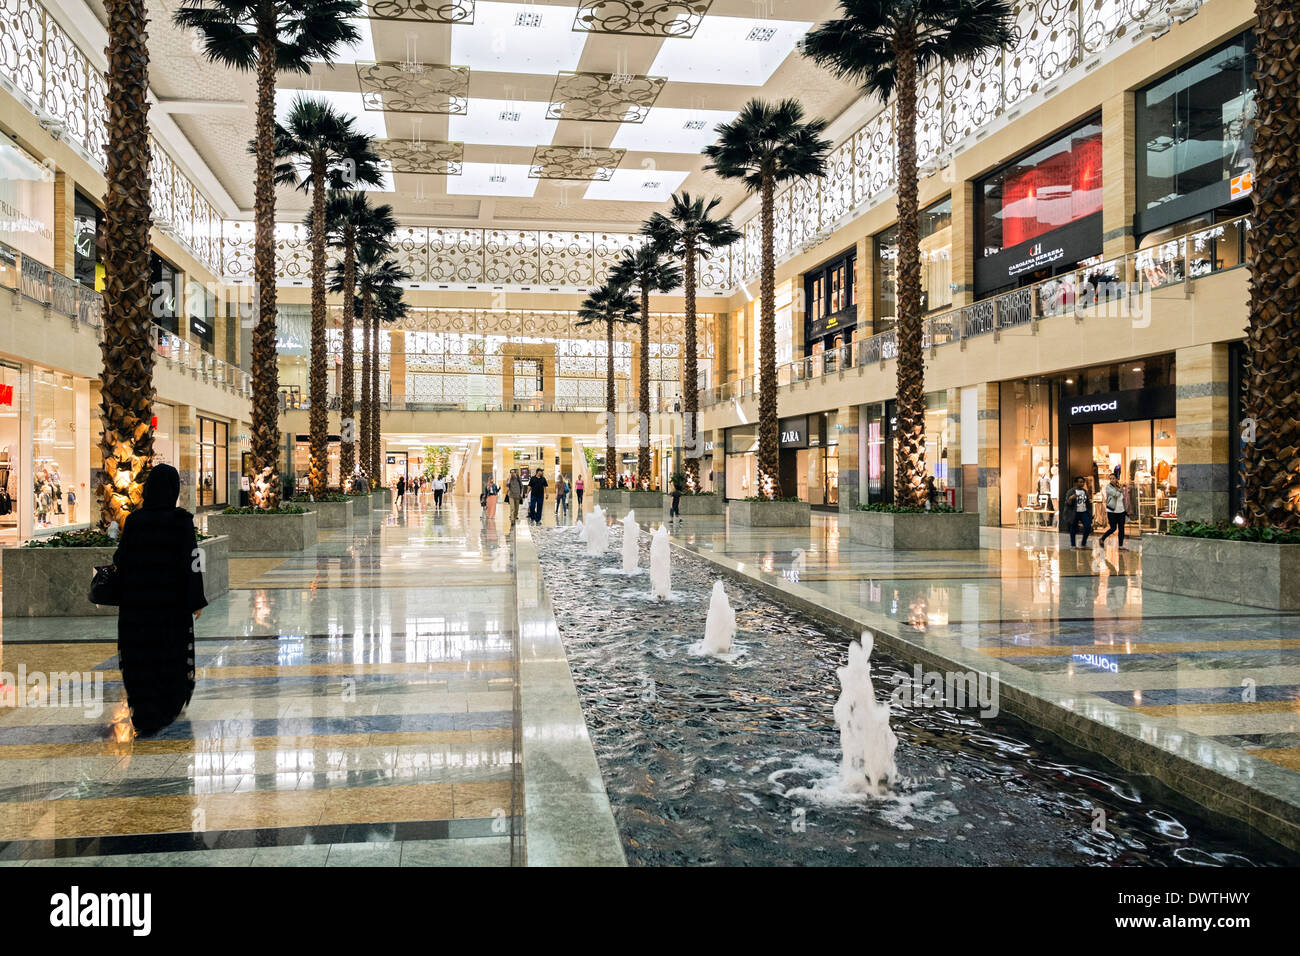 Mirdif City Centre shopping mall in Dubai United Arab Emirates - Stock Image